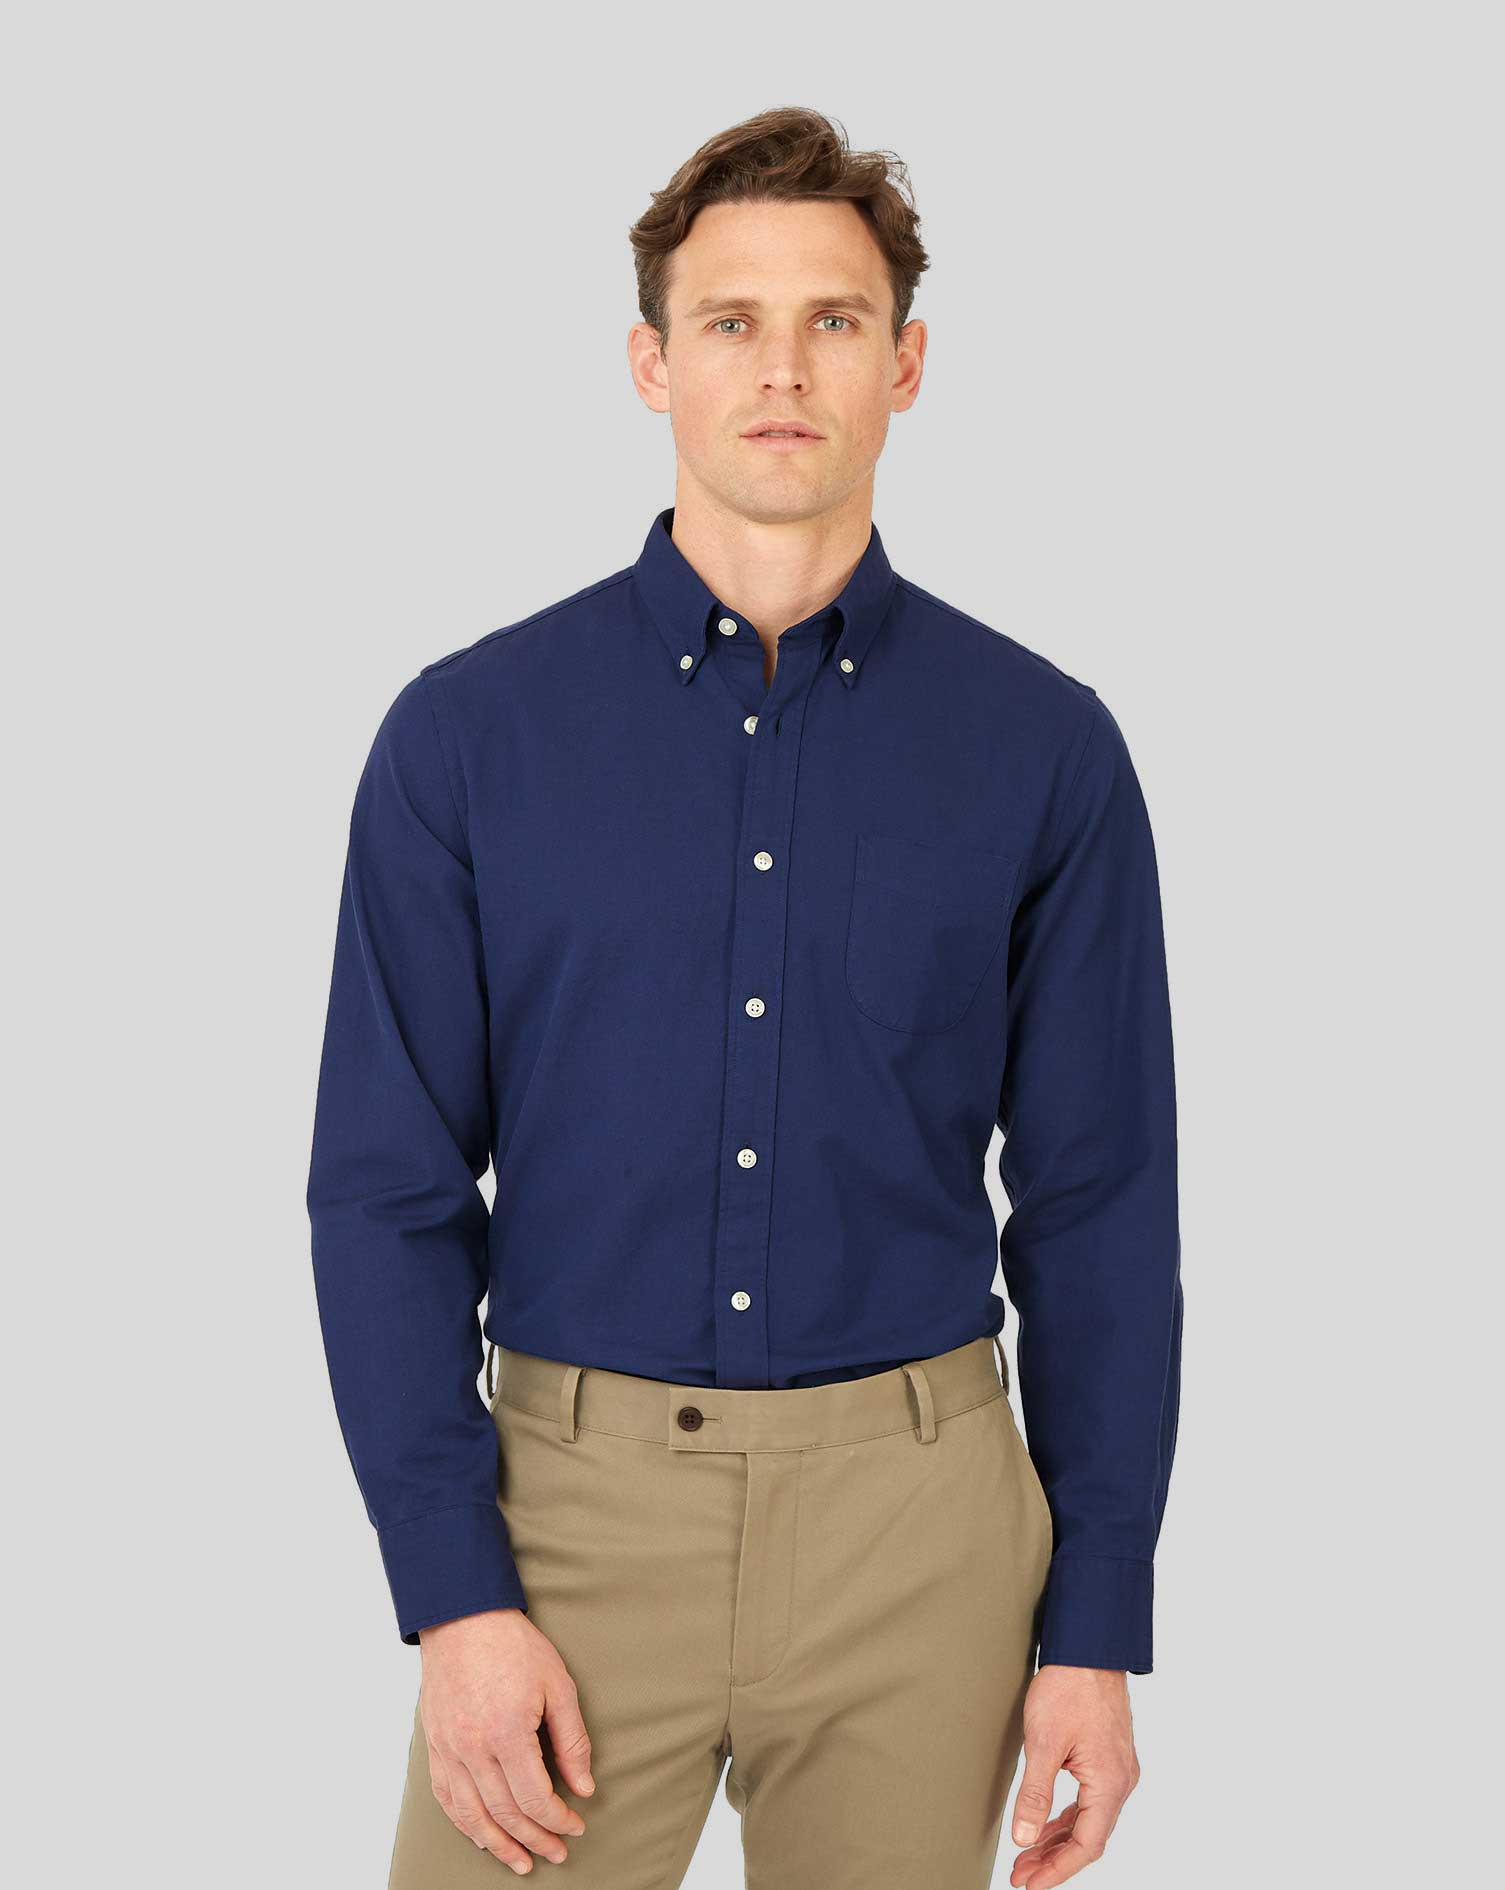 Cotton Slim Fit Button-Down Washed Oxford Royal Blue Shirt